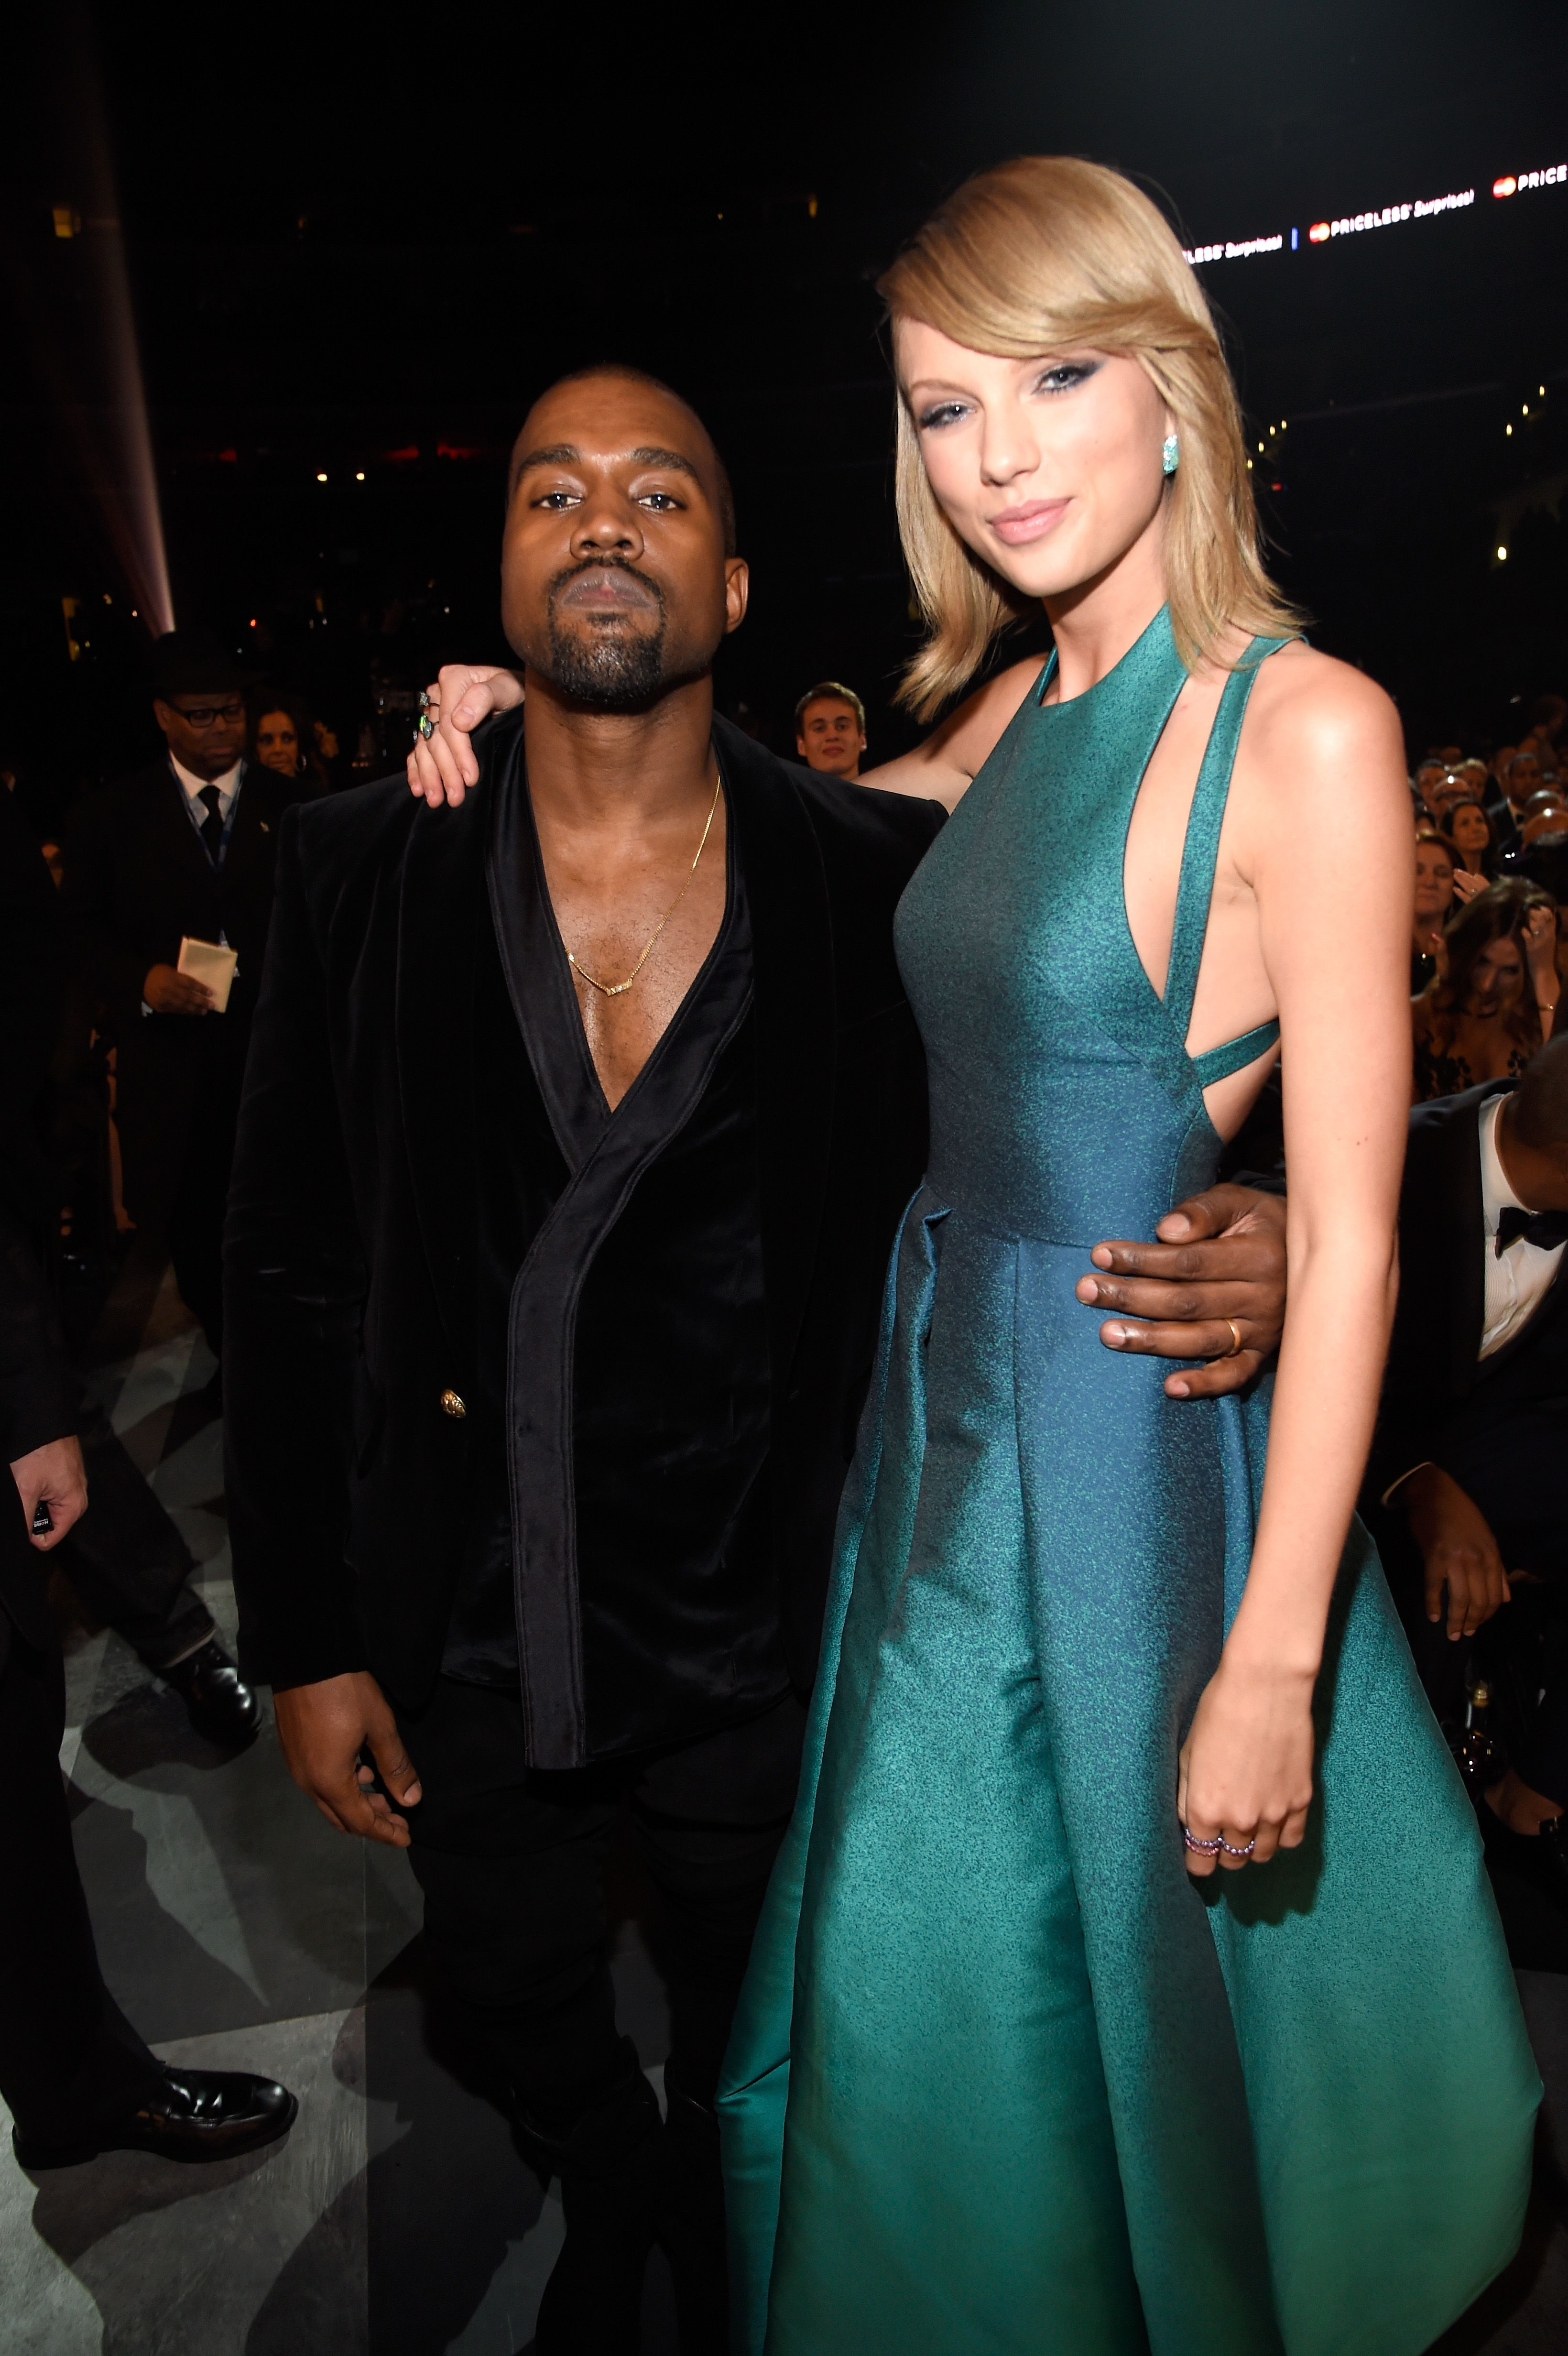 Watch New Clip Of Taylor Swift Kanye West Talking About Famous